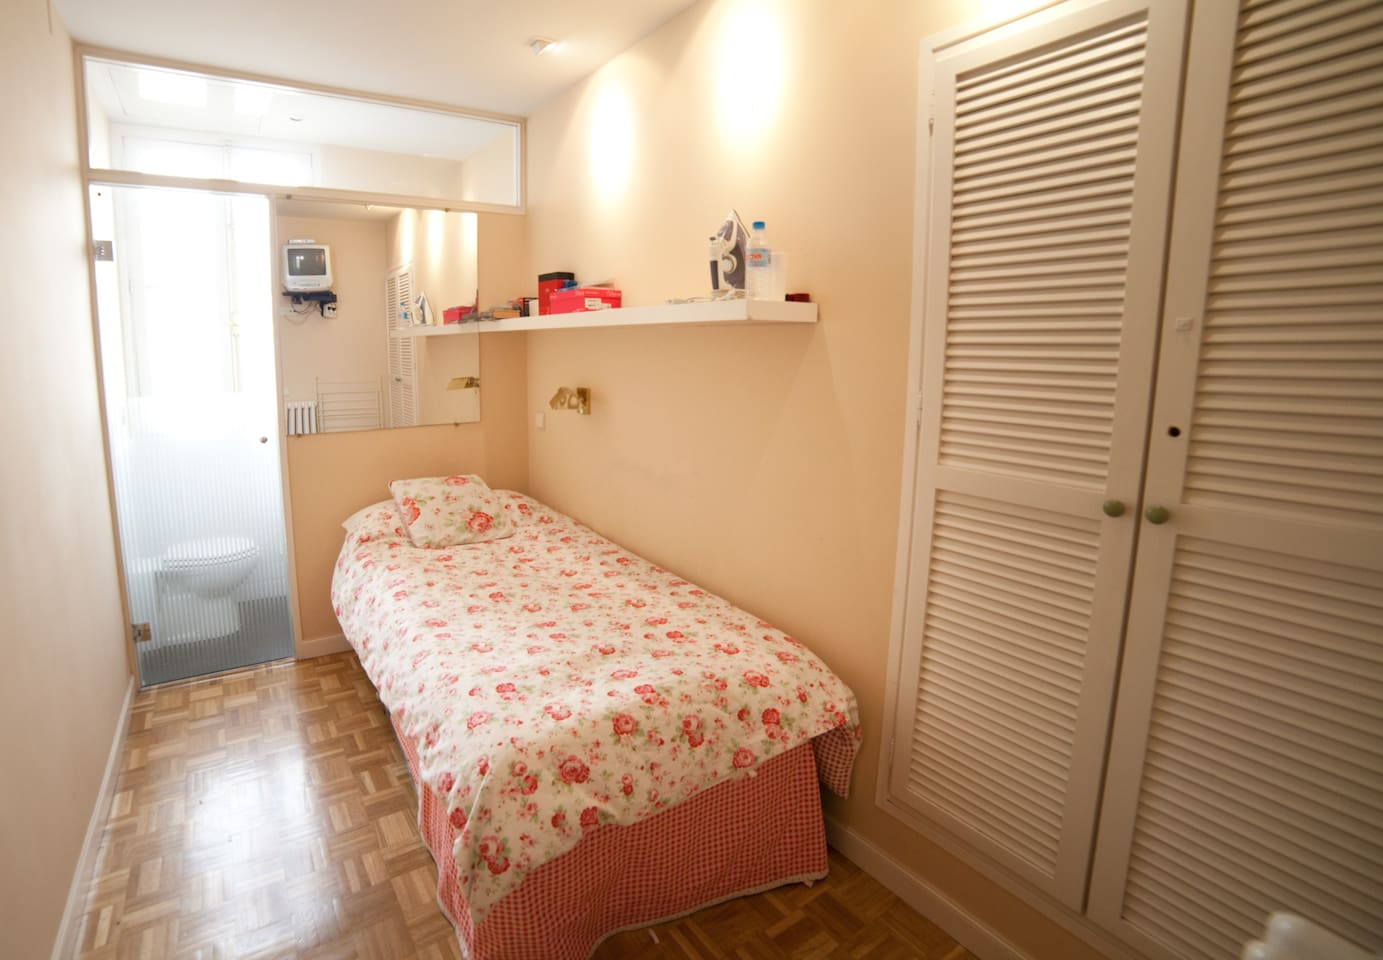 bedroom, small, ciach bed but bathroom ensuite